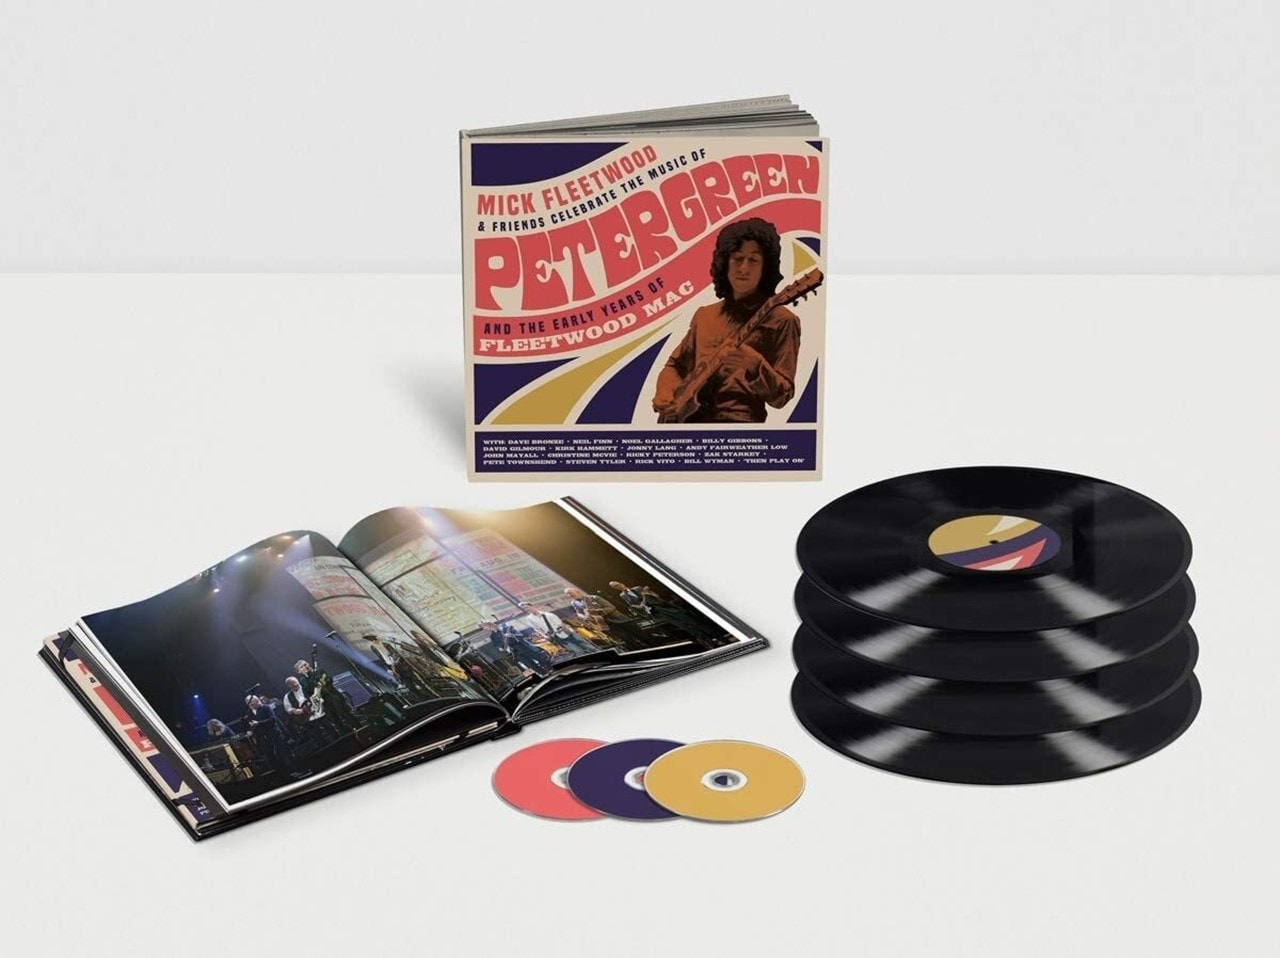 Mick Fleetwood & Friends Celebrate the Music of Peter Green And The Early Years Of Fleetwood Mac - 4 - 1